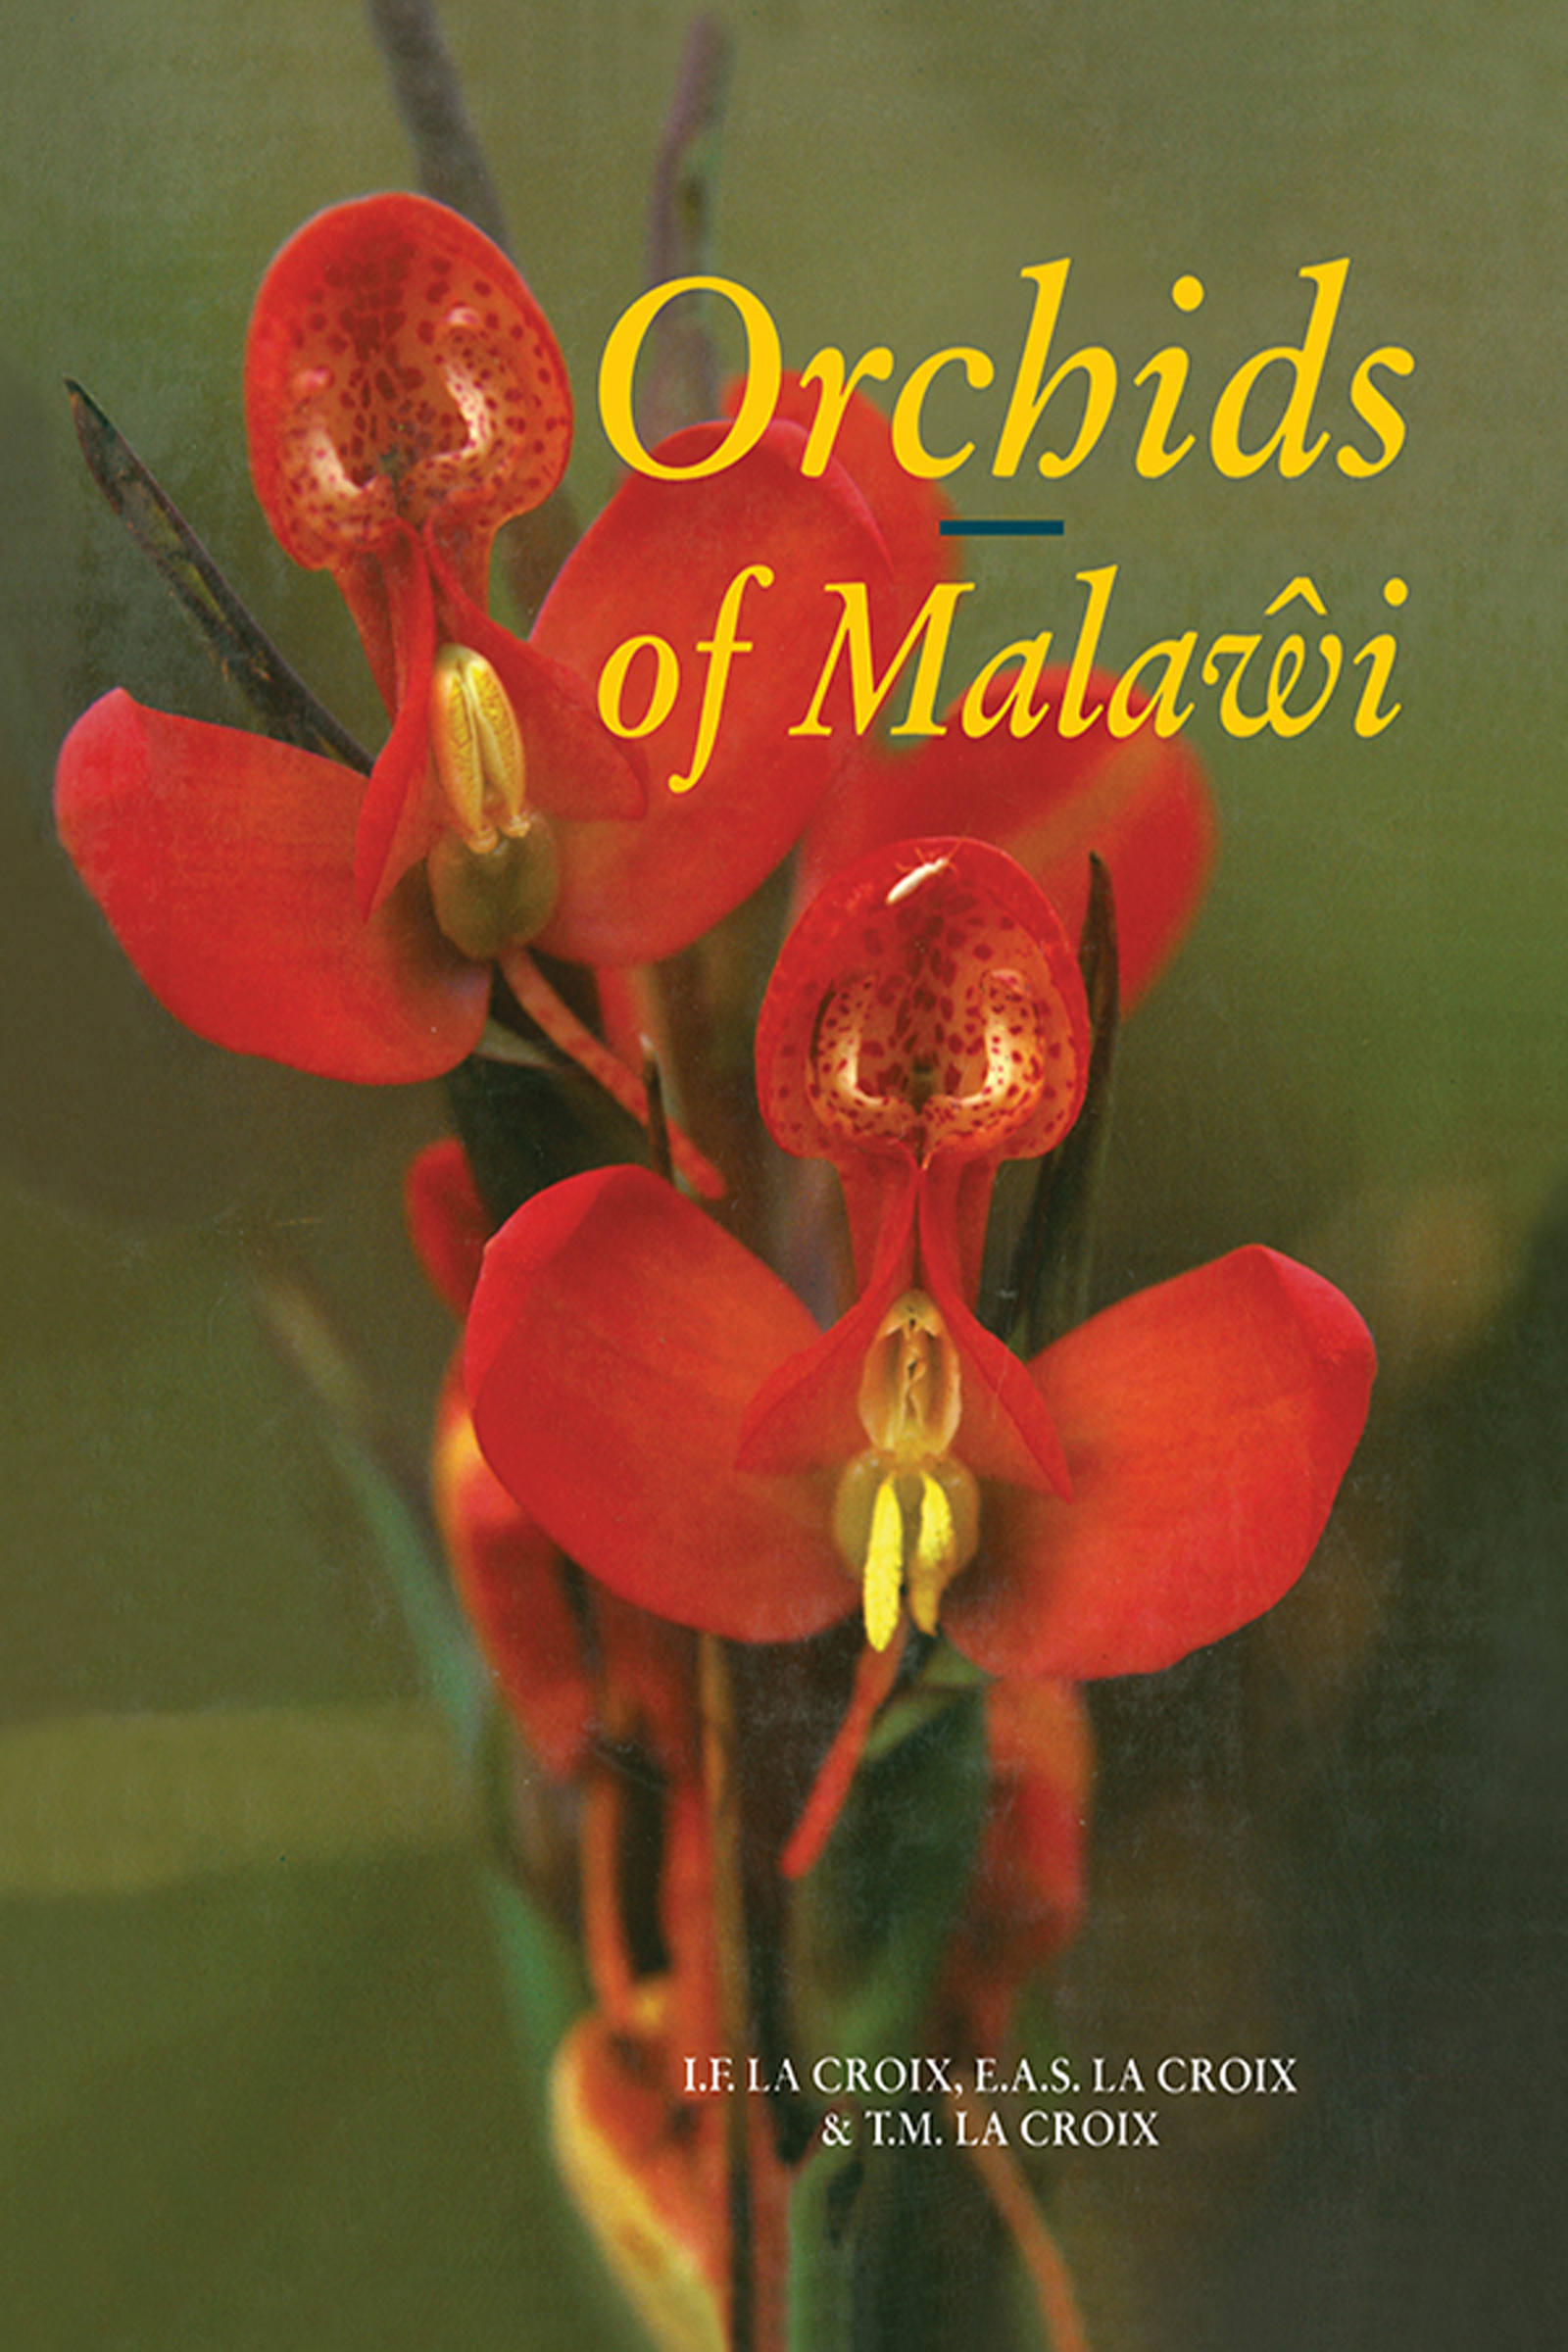 Orchids of Malawi